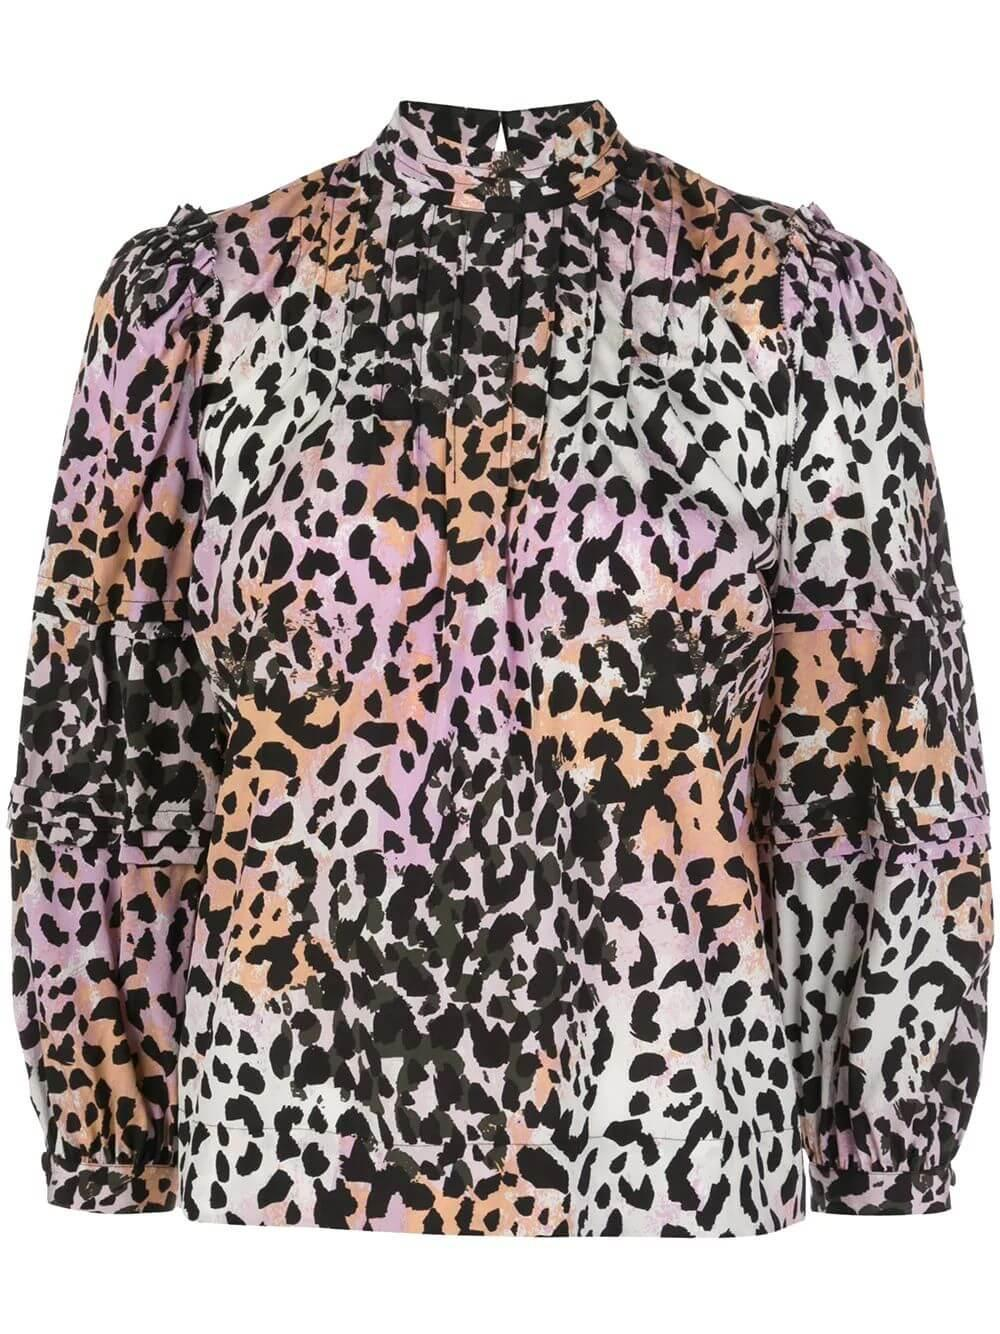 Leta High Neck Animal Print Blouse